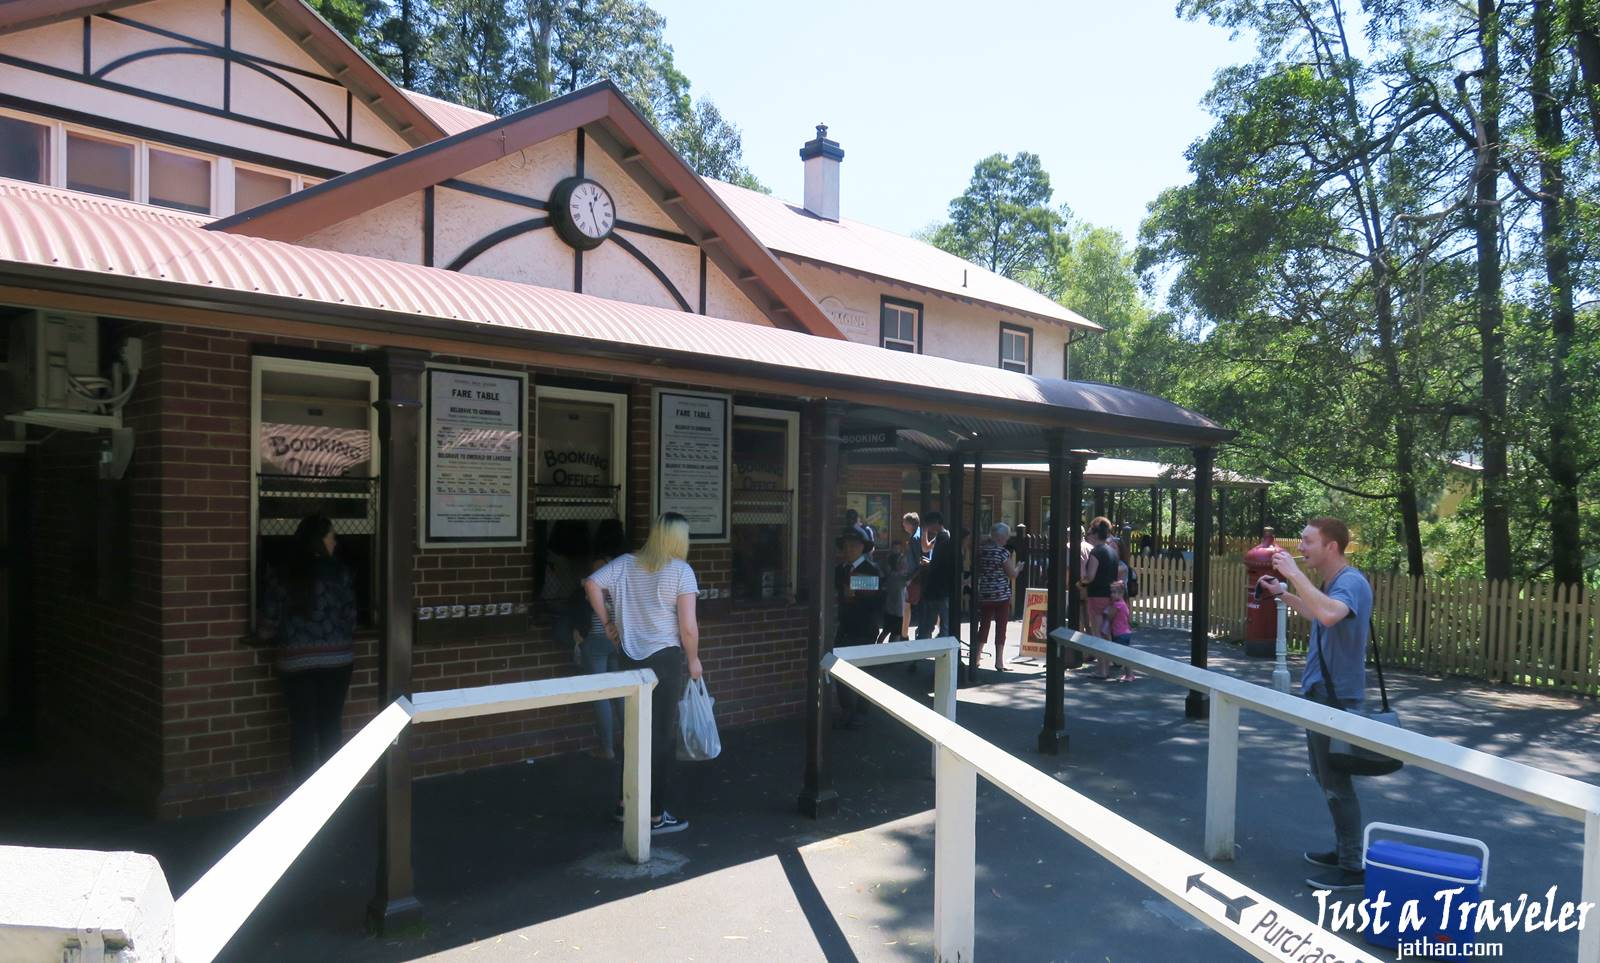 Melbourne-Puffing Billy Steam Train-Puffing Billy Railway-Fare-Boarding-Attractions-Recommendation-Independent Travel-Day Tour-Half Day Tour-Itinerary